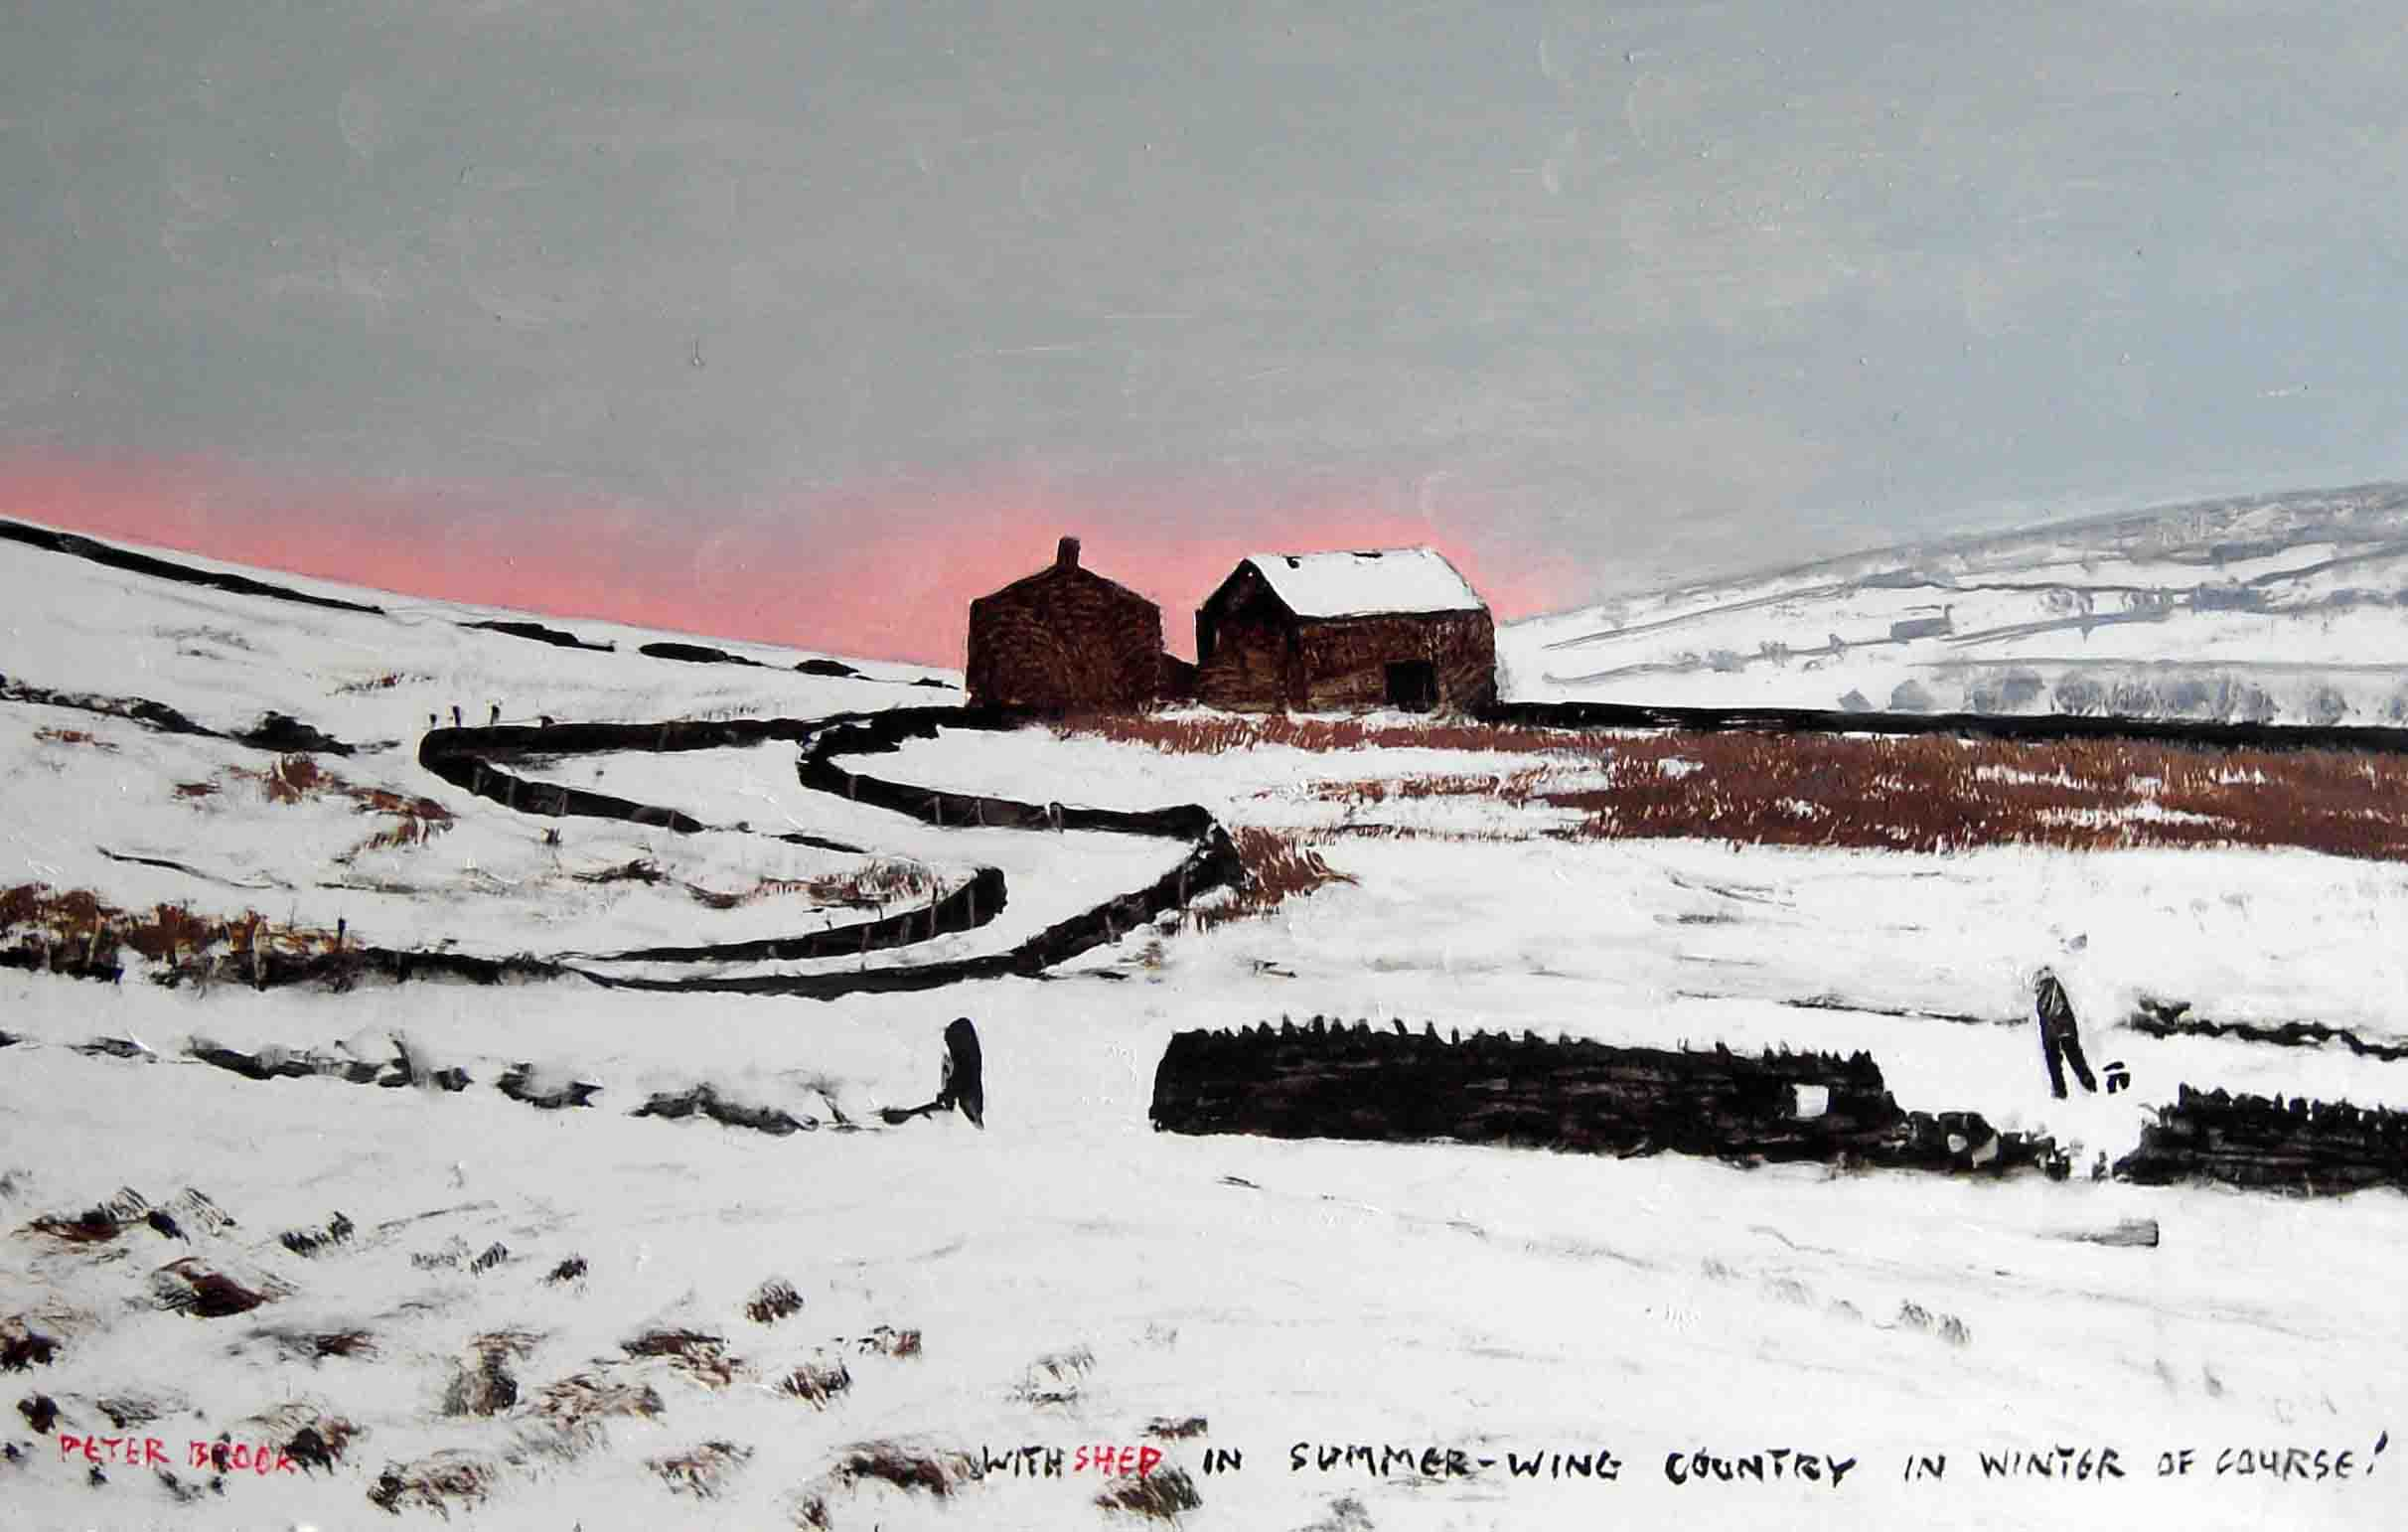 PETER BROOK WEEKEND EXHIBITION! 2nd & 3rd MARCH 2013